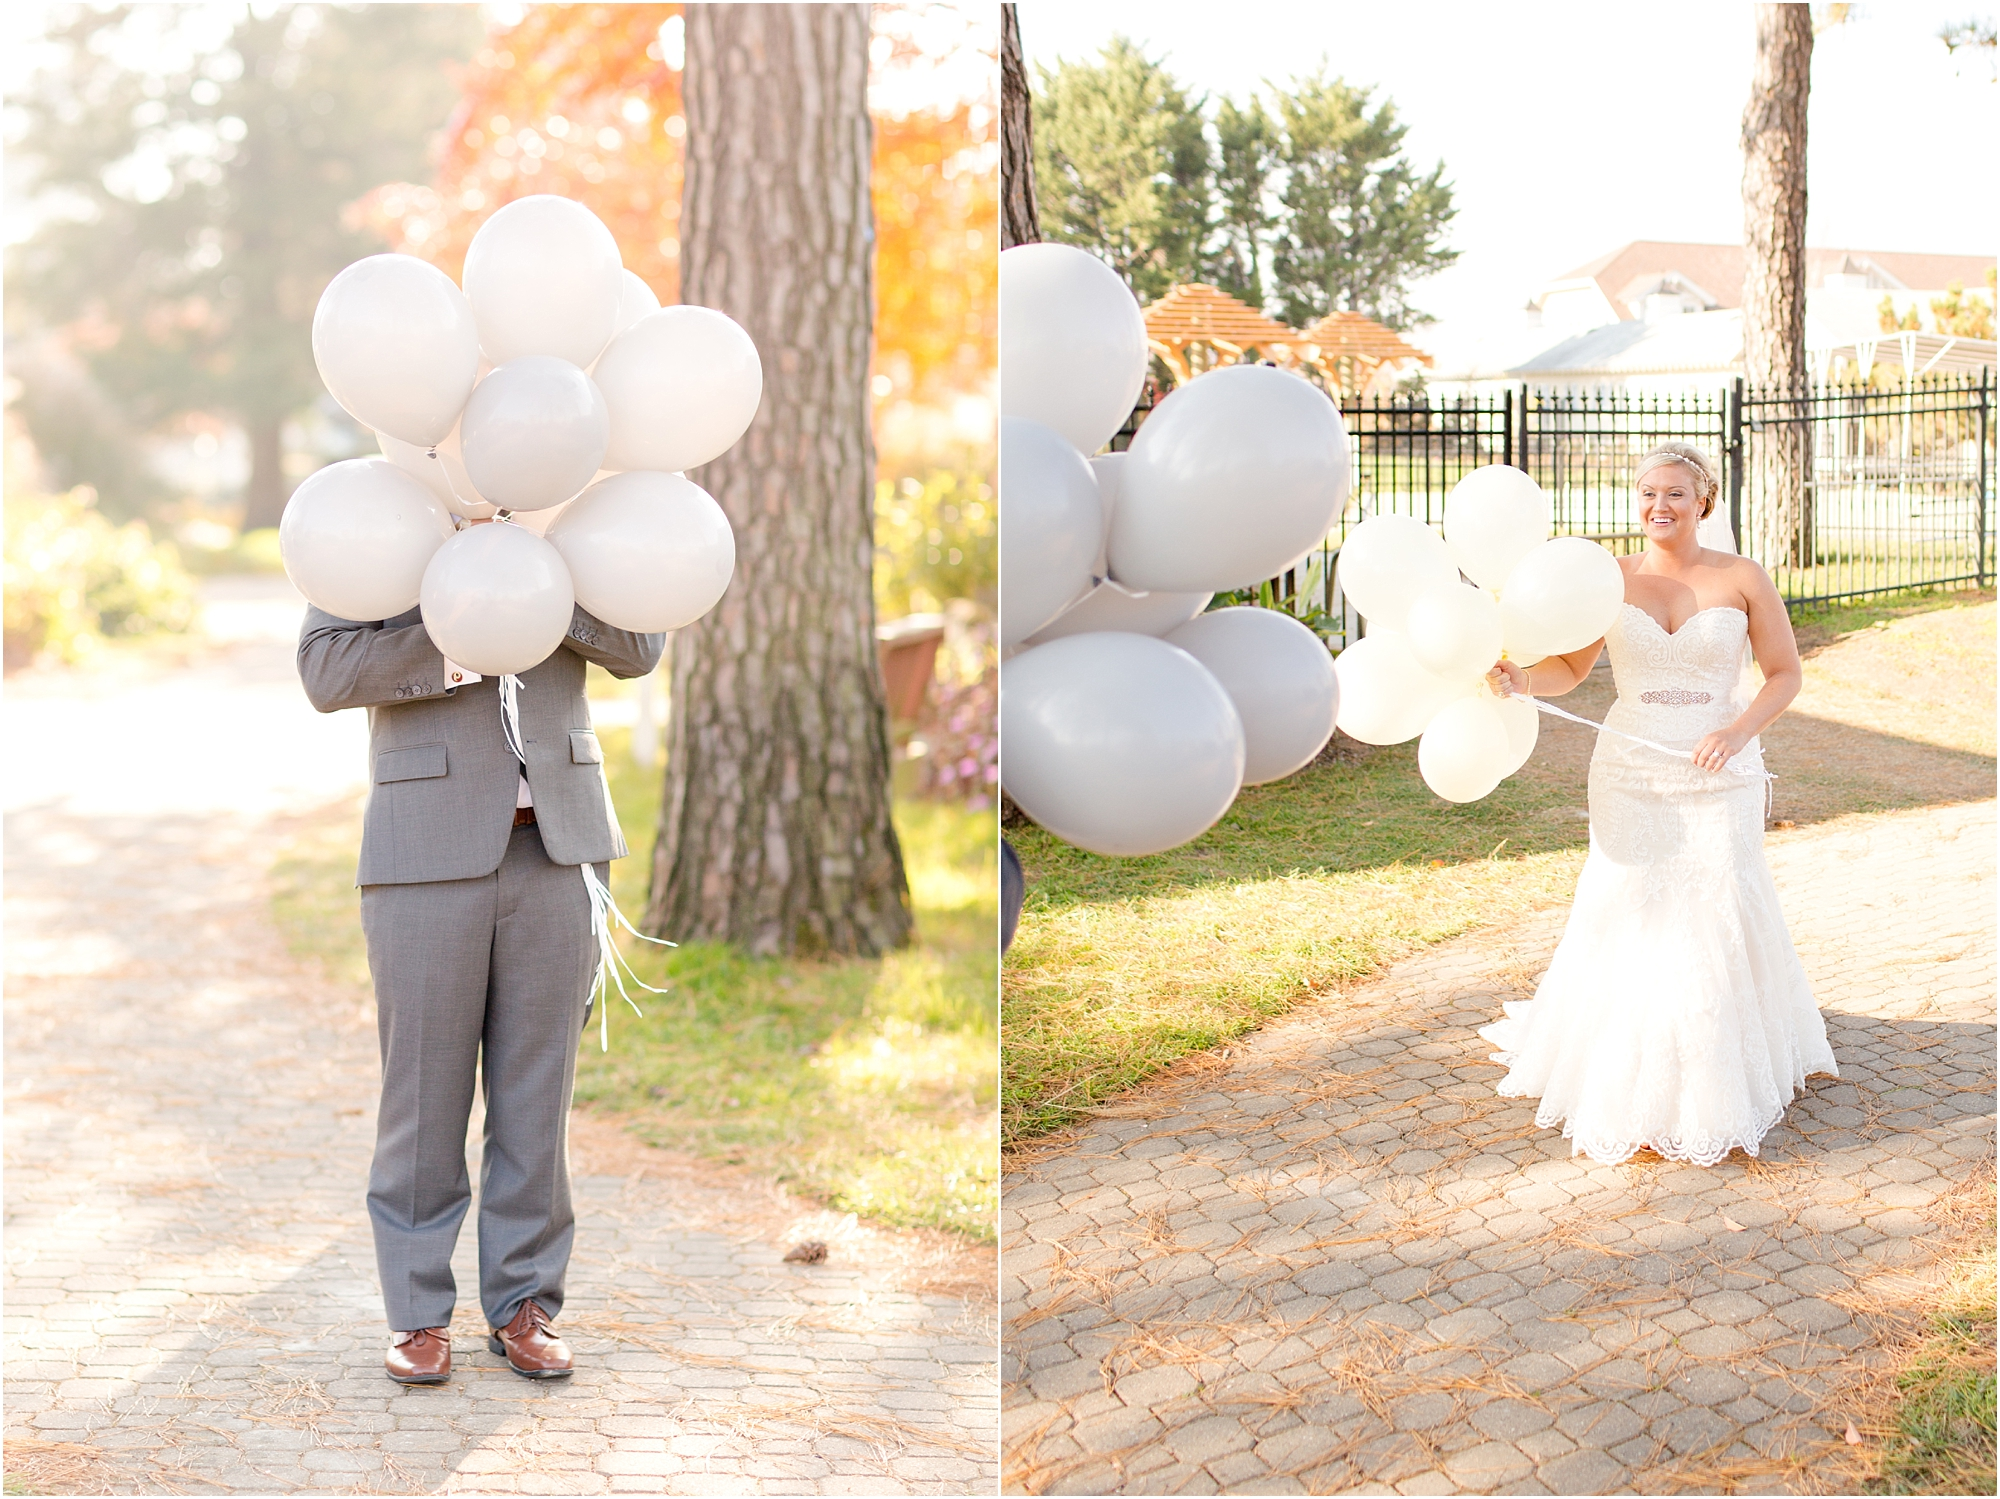 The both held a bunch of balloons and then let go of them when they did their first look. So cute!